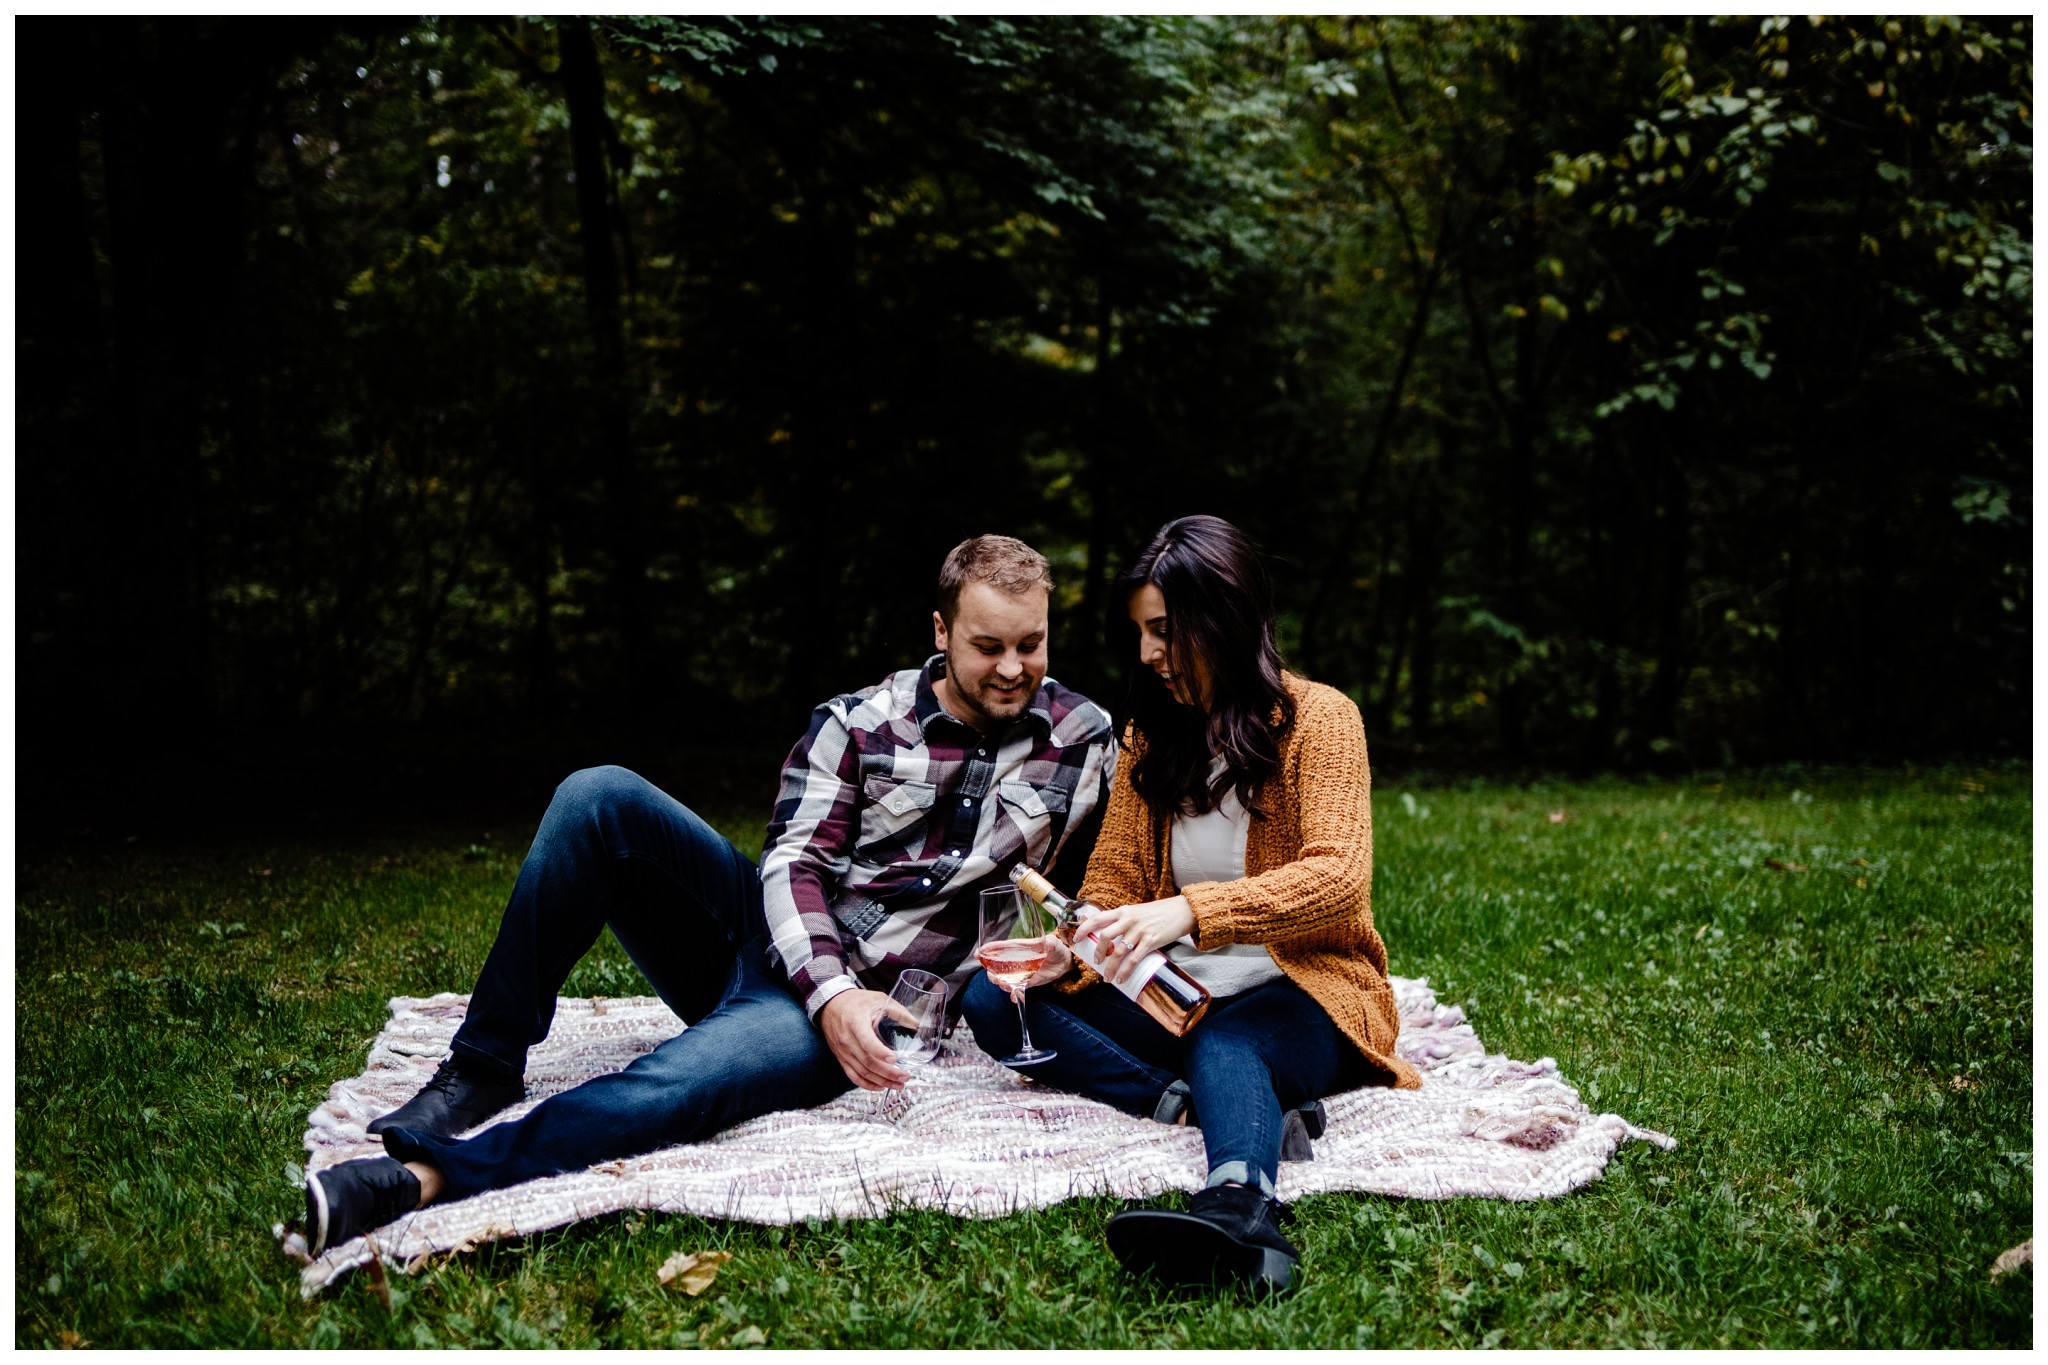 Williams Park Aldergrove Engagement Photographer Moody Fall Couple River Water Romantic Pose Yellow Leaves White Dress Dark_0028.jpg